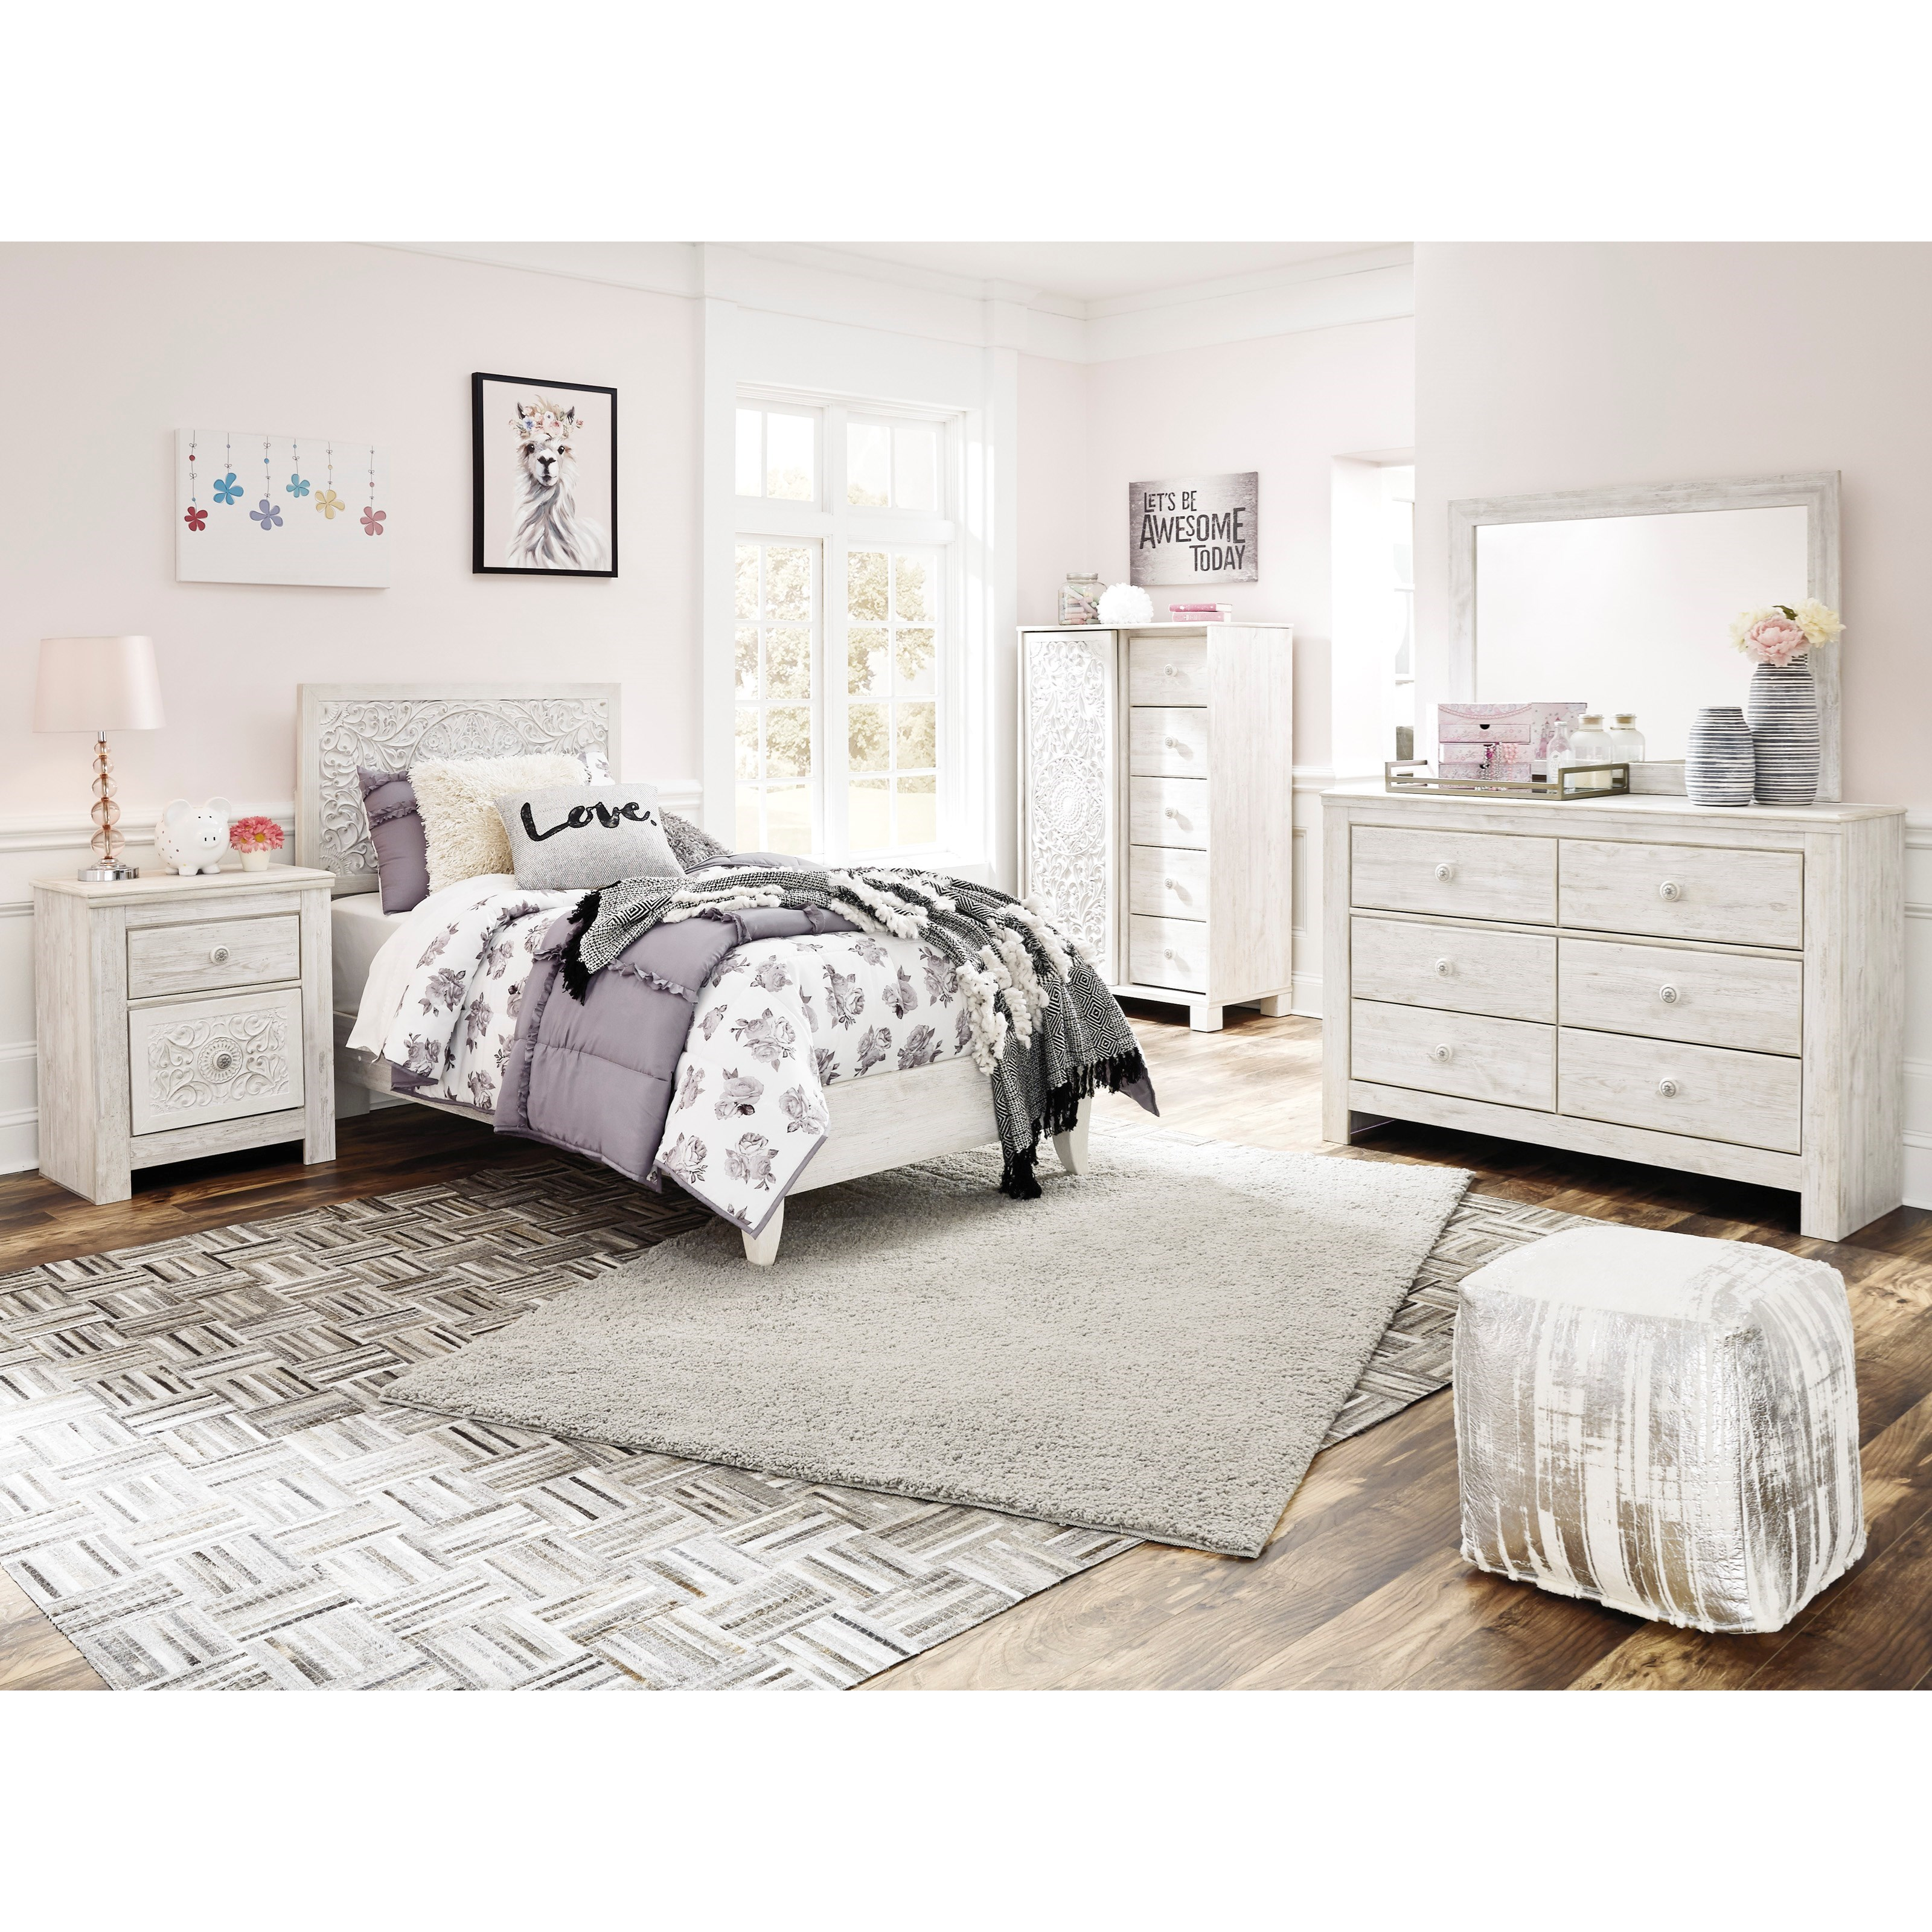 Paxberry Twin Bedroom Group by Signature Design by Ashley at Carolina Direct